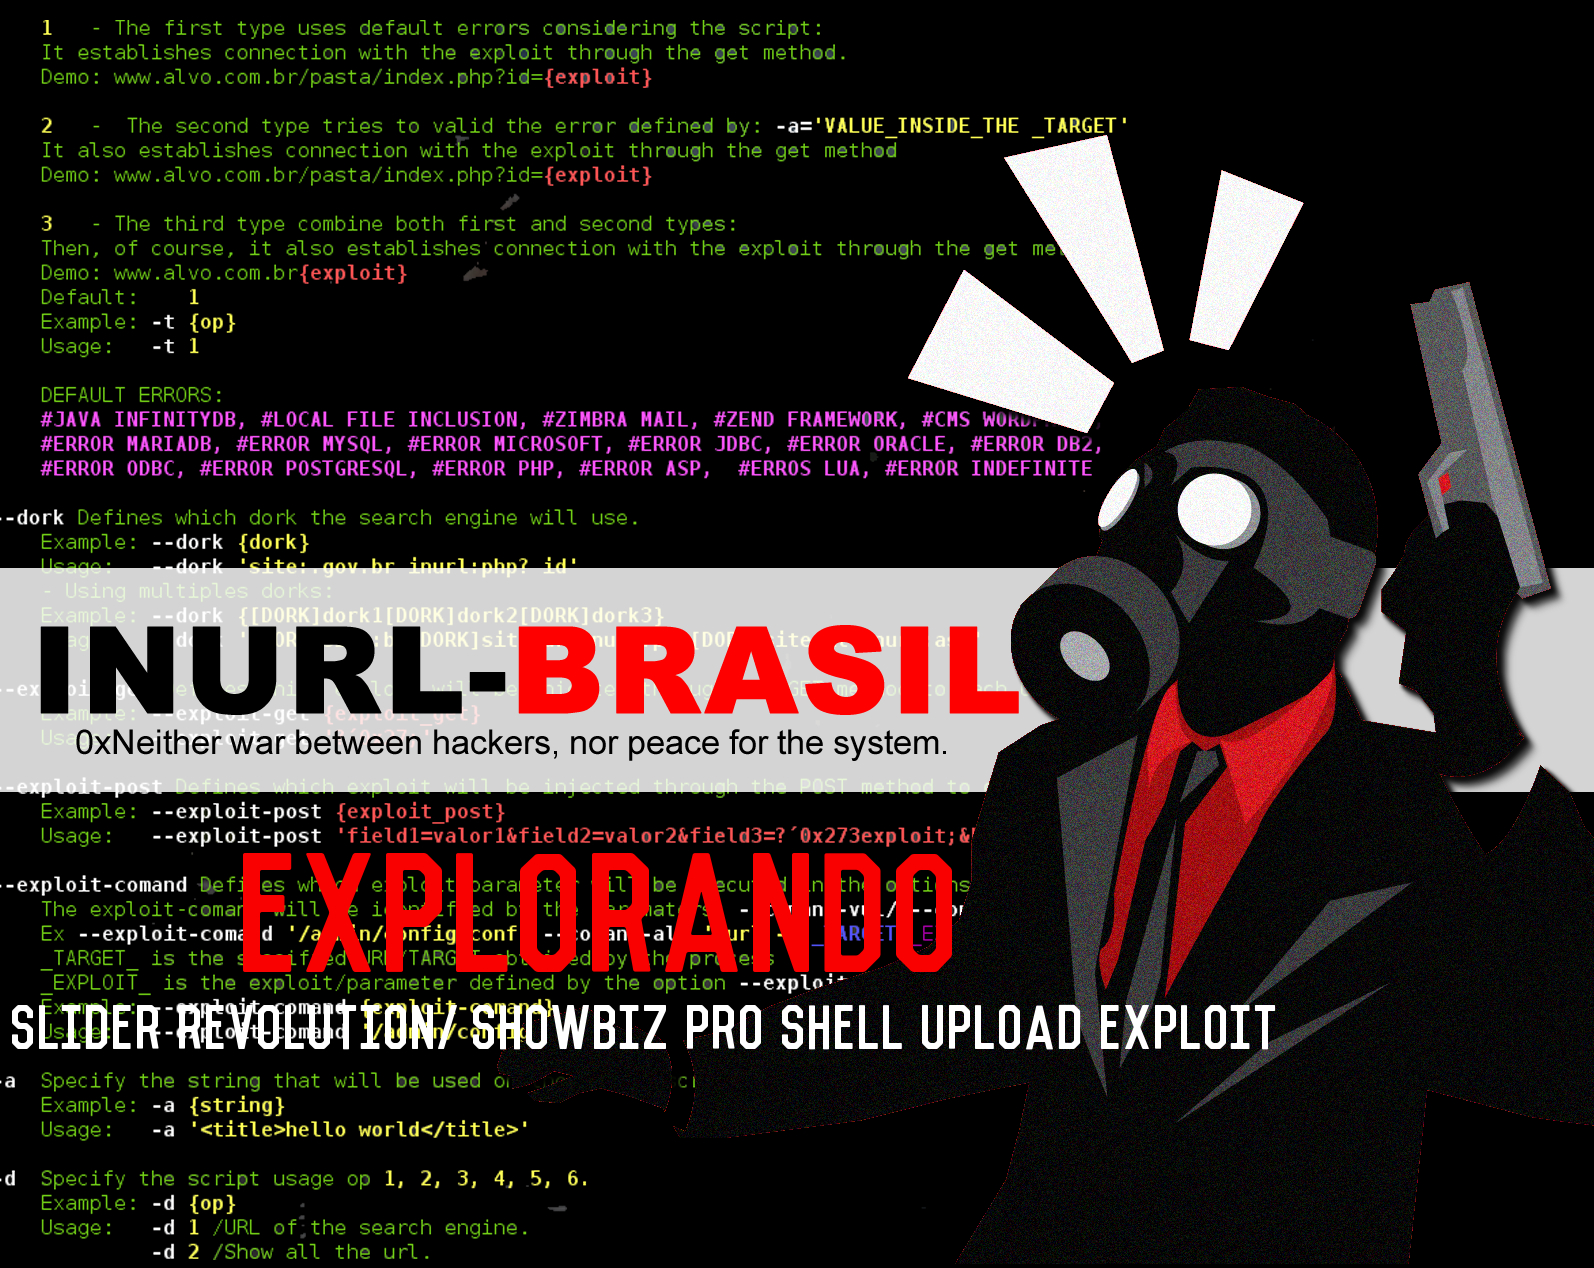 Explorando Slider Revolution/Showbiz Pro Shell Upload Exploit